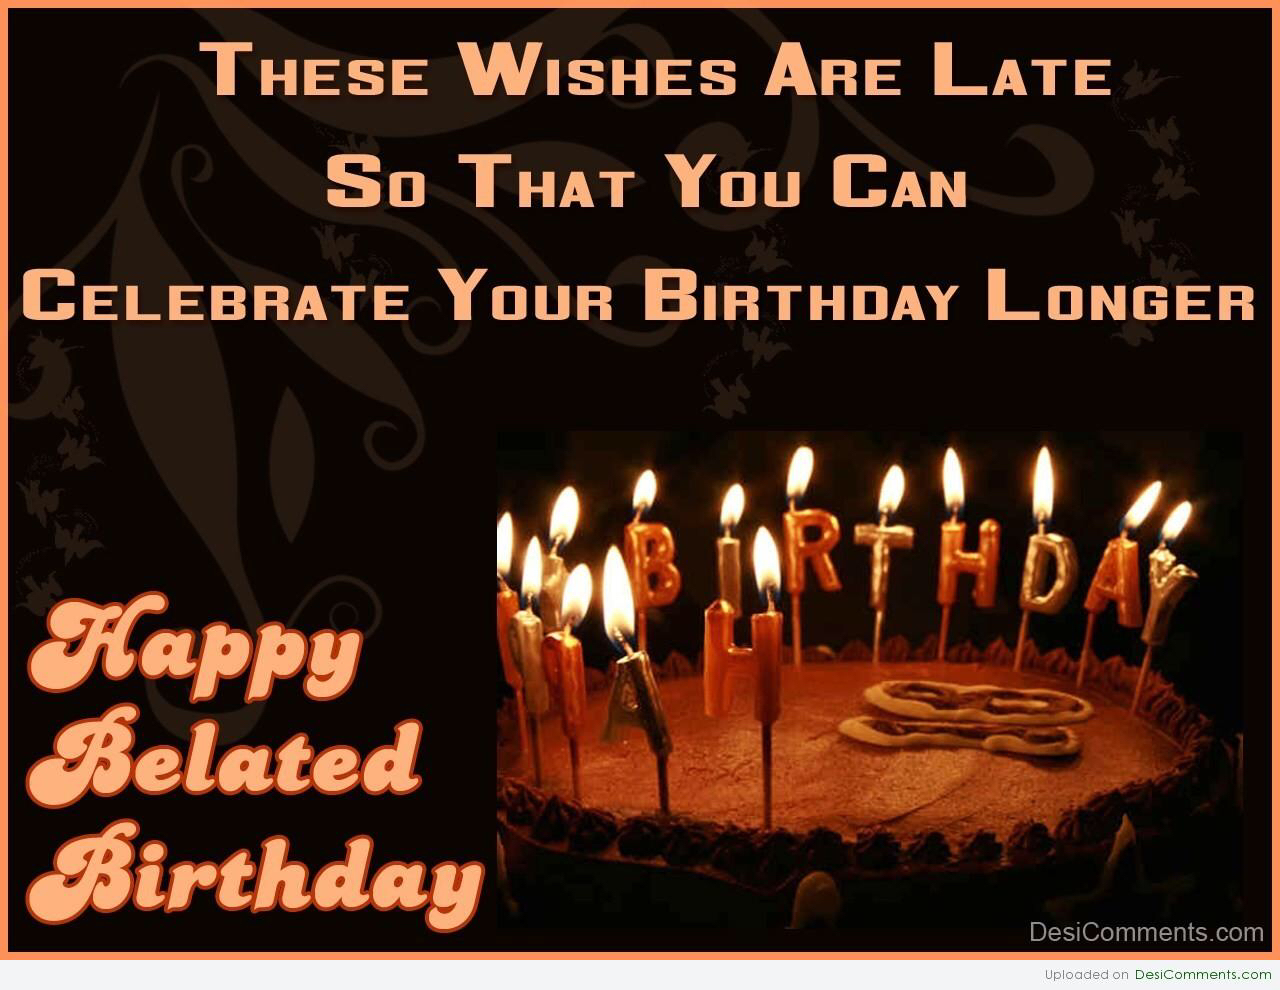 free clipart belated birthday wishes ; b929e7944b22dc6f3e075a8d104eee03